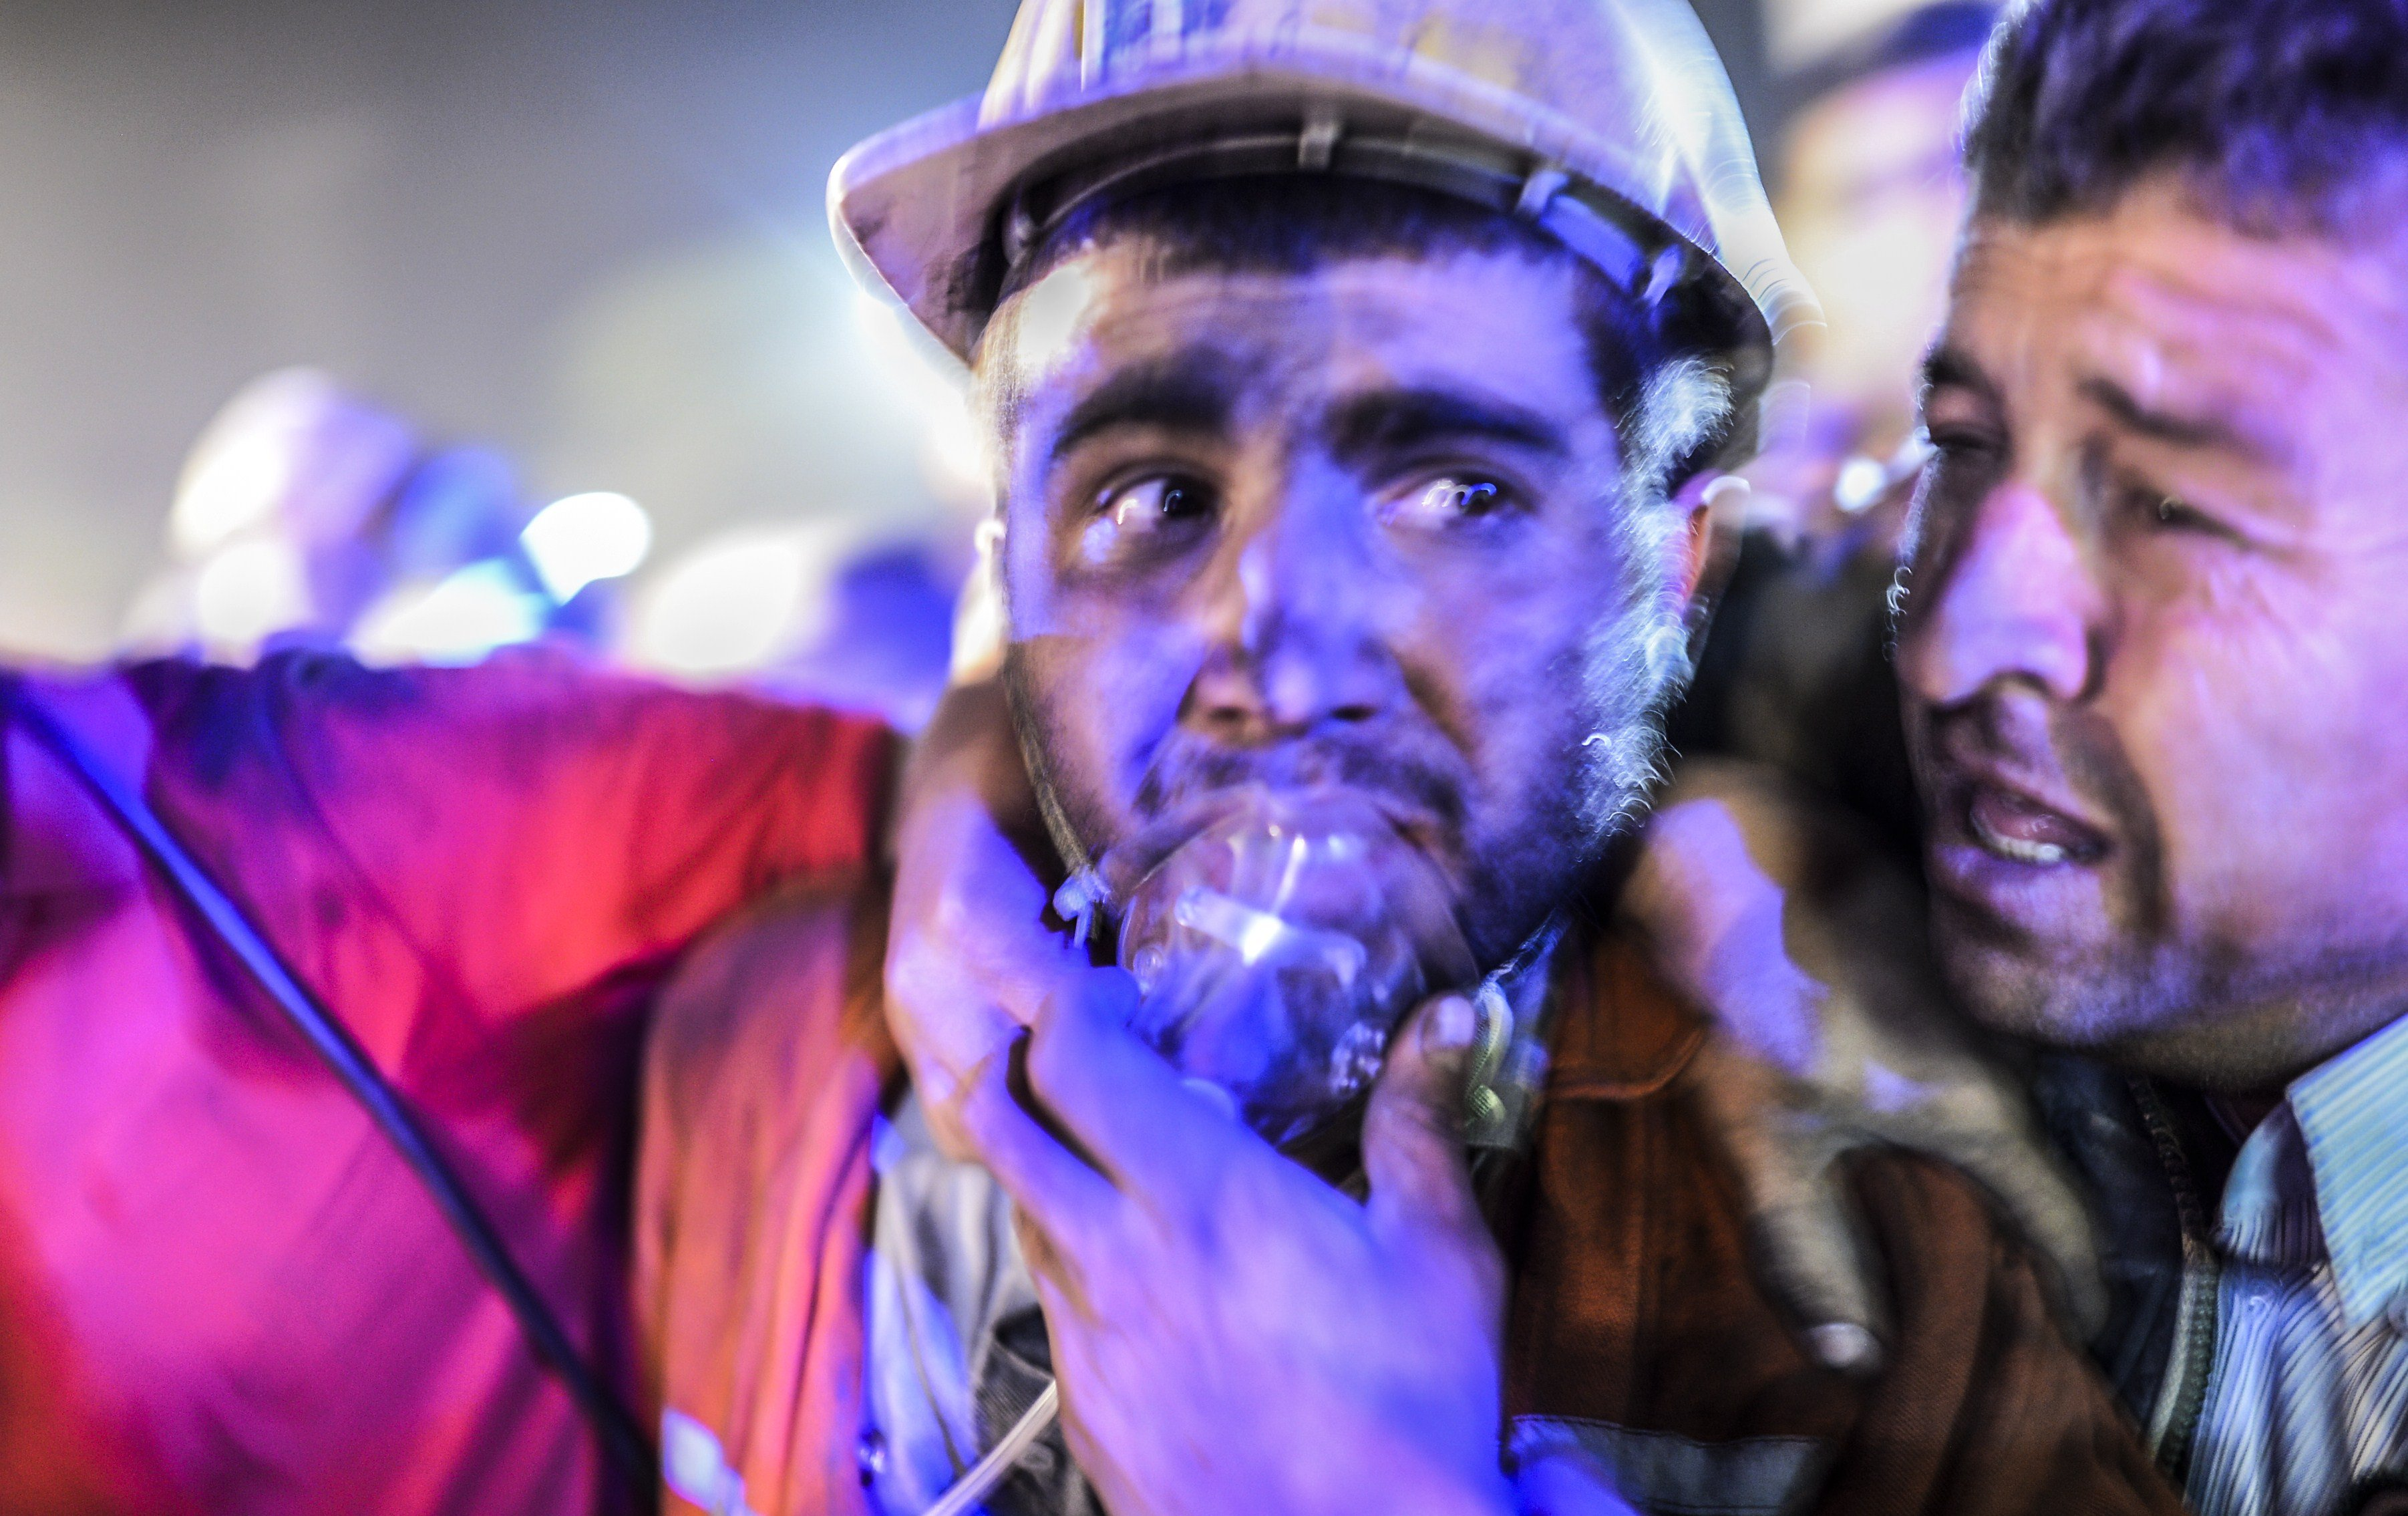 A miner with his father after an explosion on May 13, 2014 in Manisa.